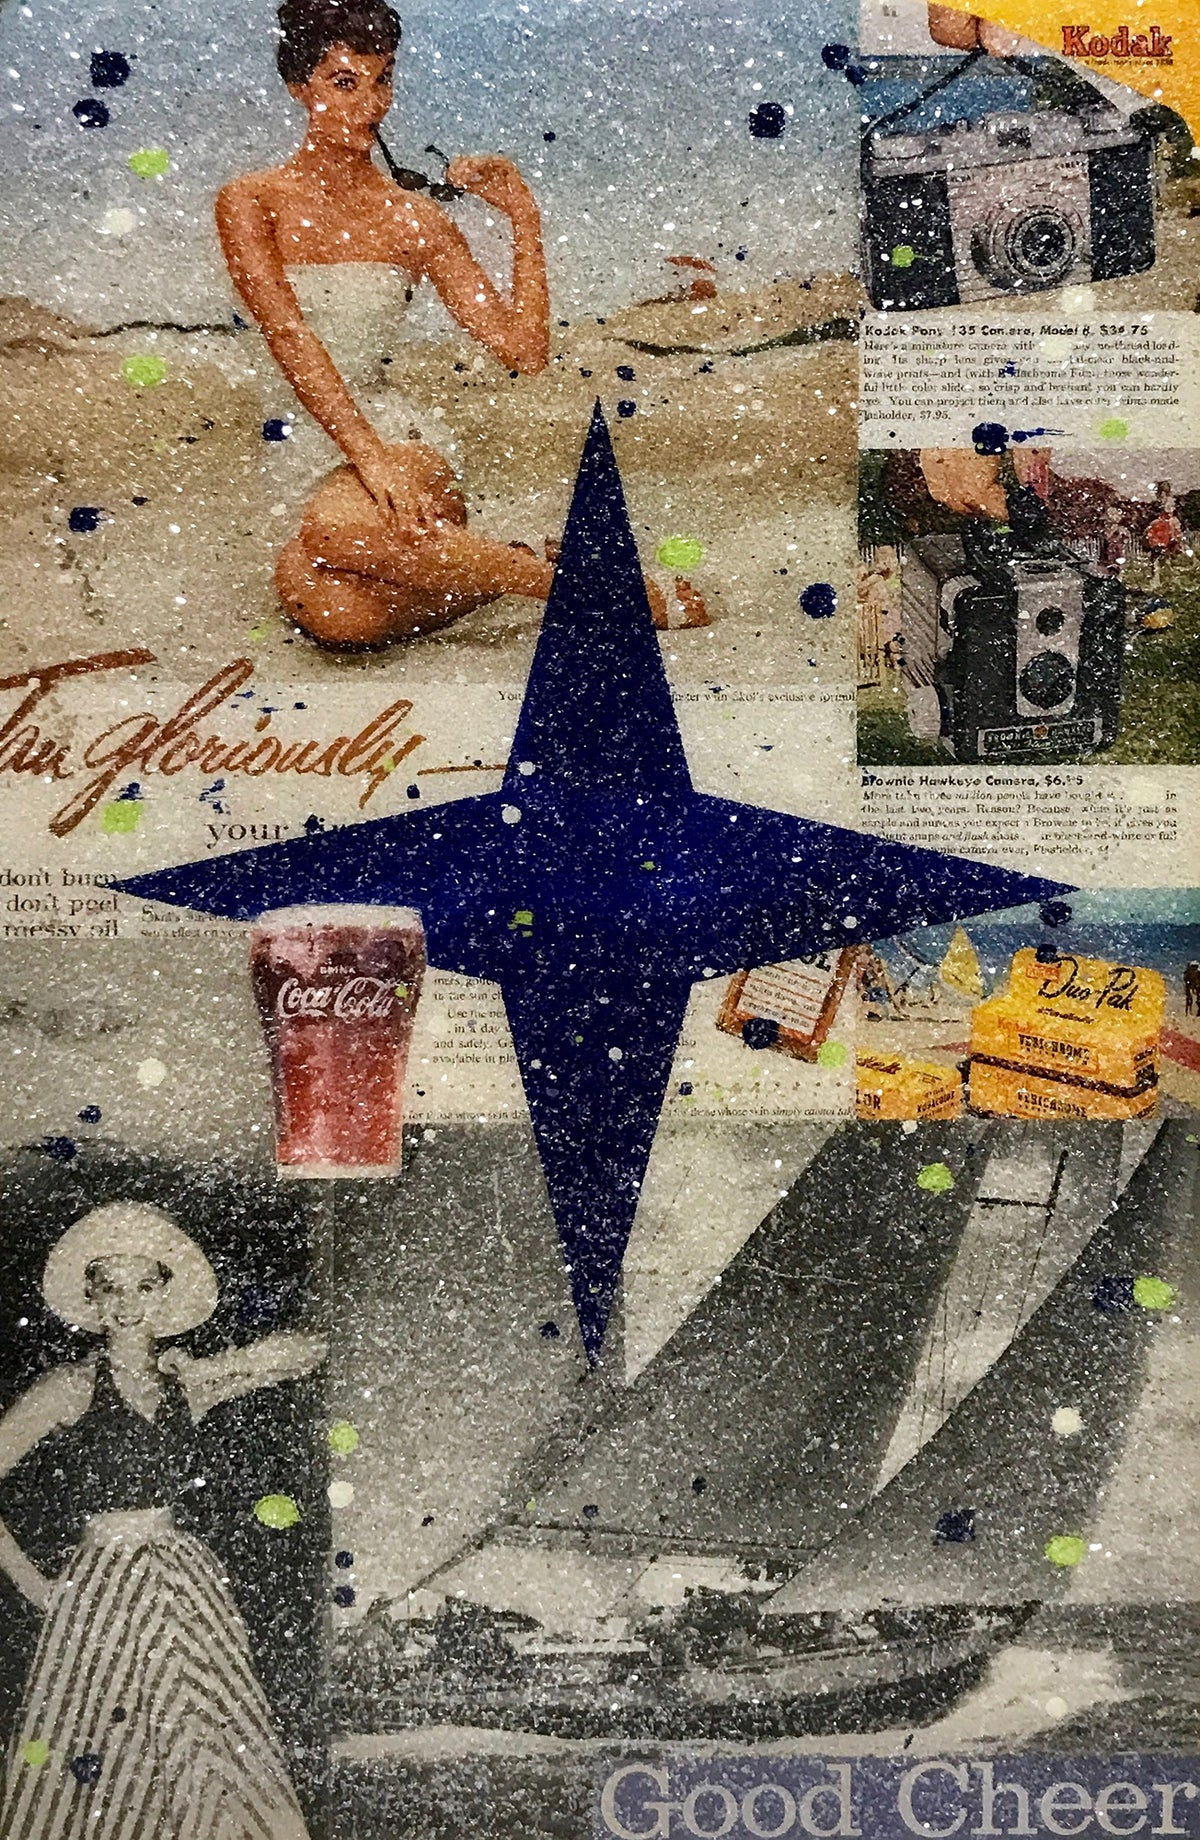 "John Joseph Hanright ""Good Cheer"" - Ephemera, Oil, Diamond Dust, Resin on Vintage Bottle Crate - 18 x 12 x 5"""